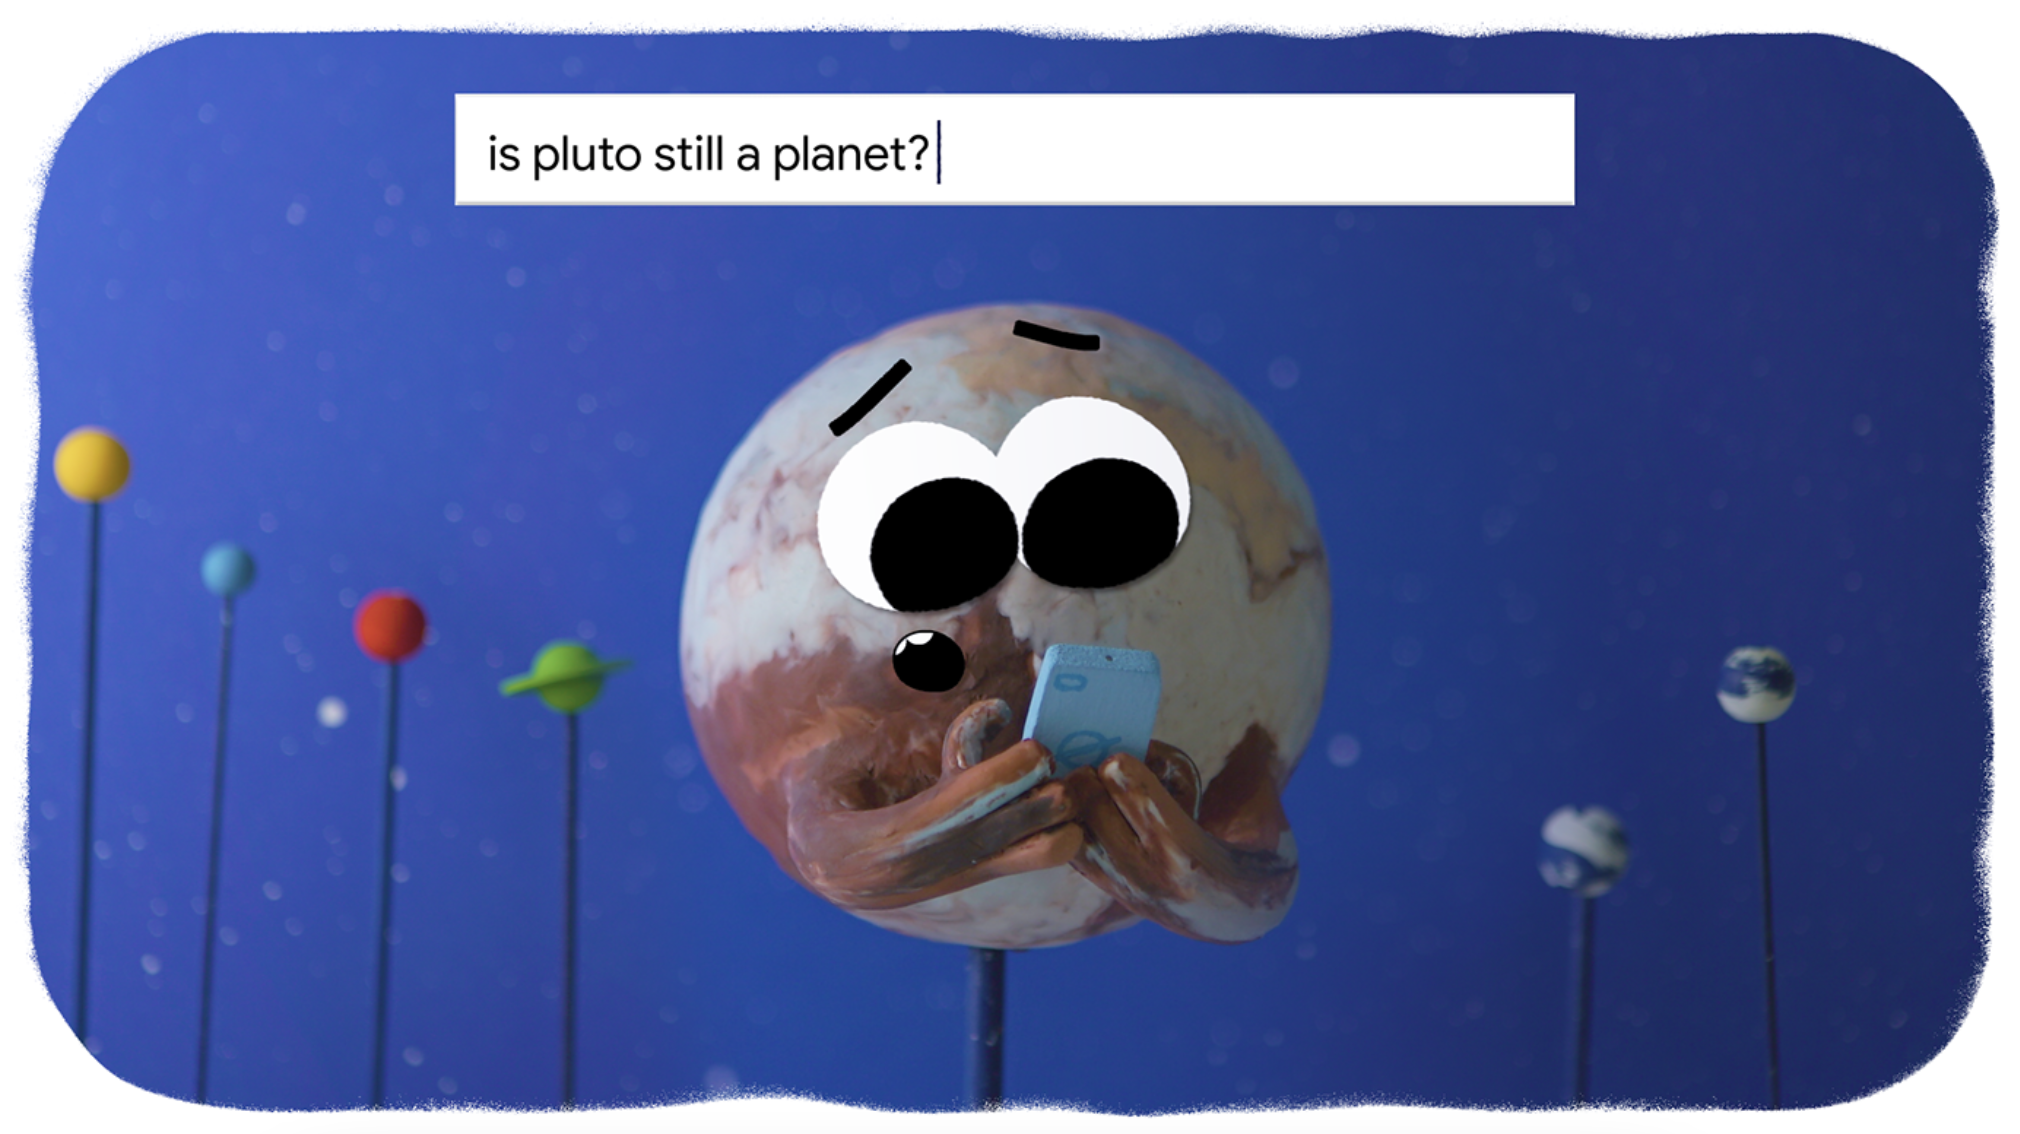 A clay cartoon of Pluto the planet googling if it's still a planet.